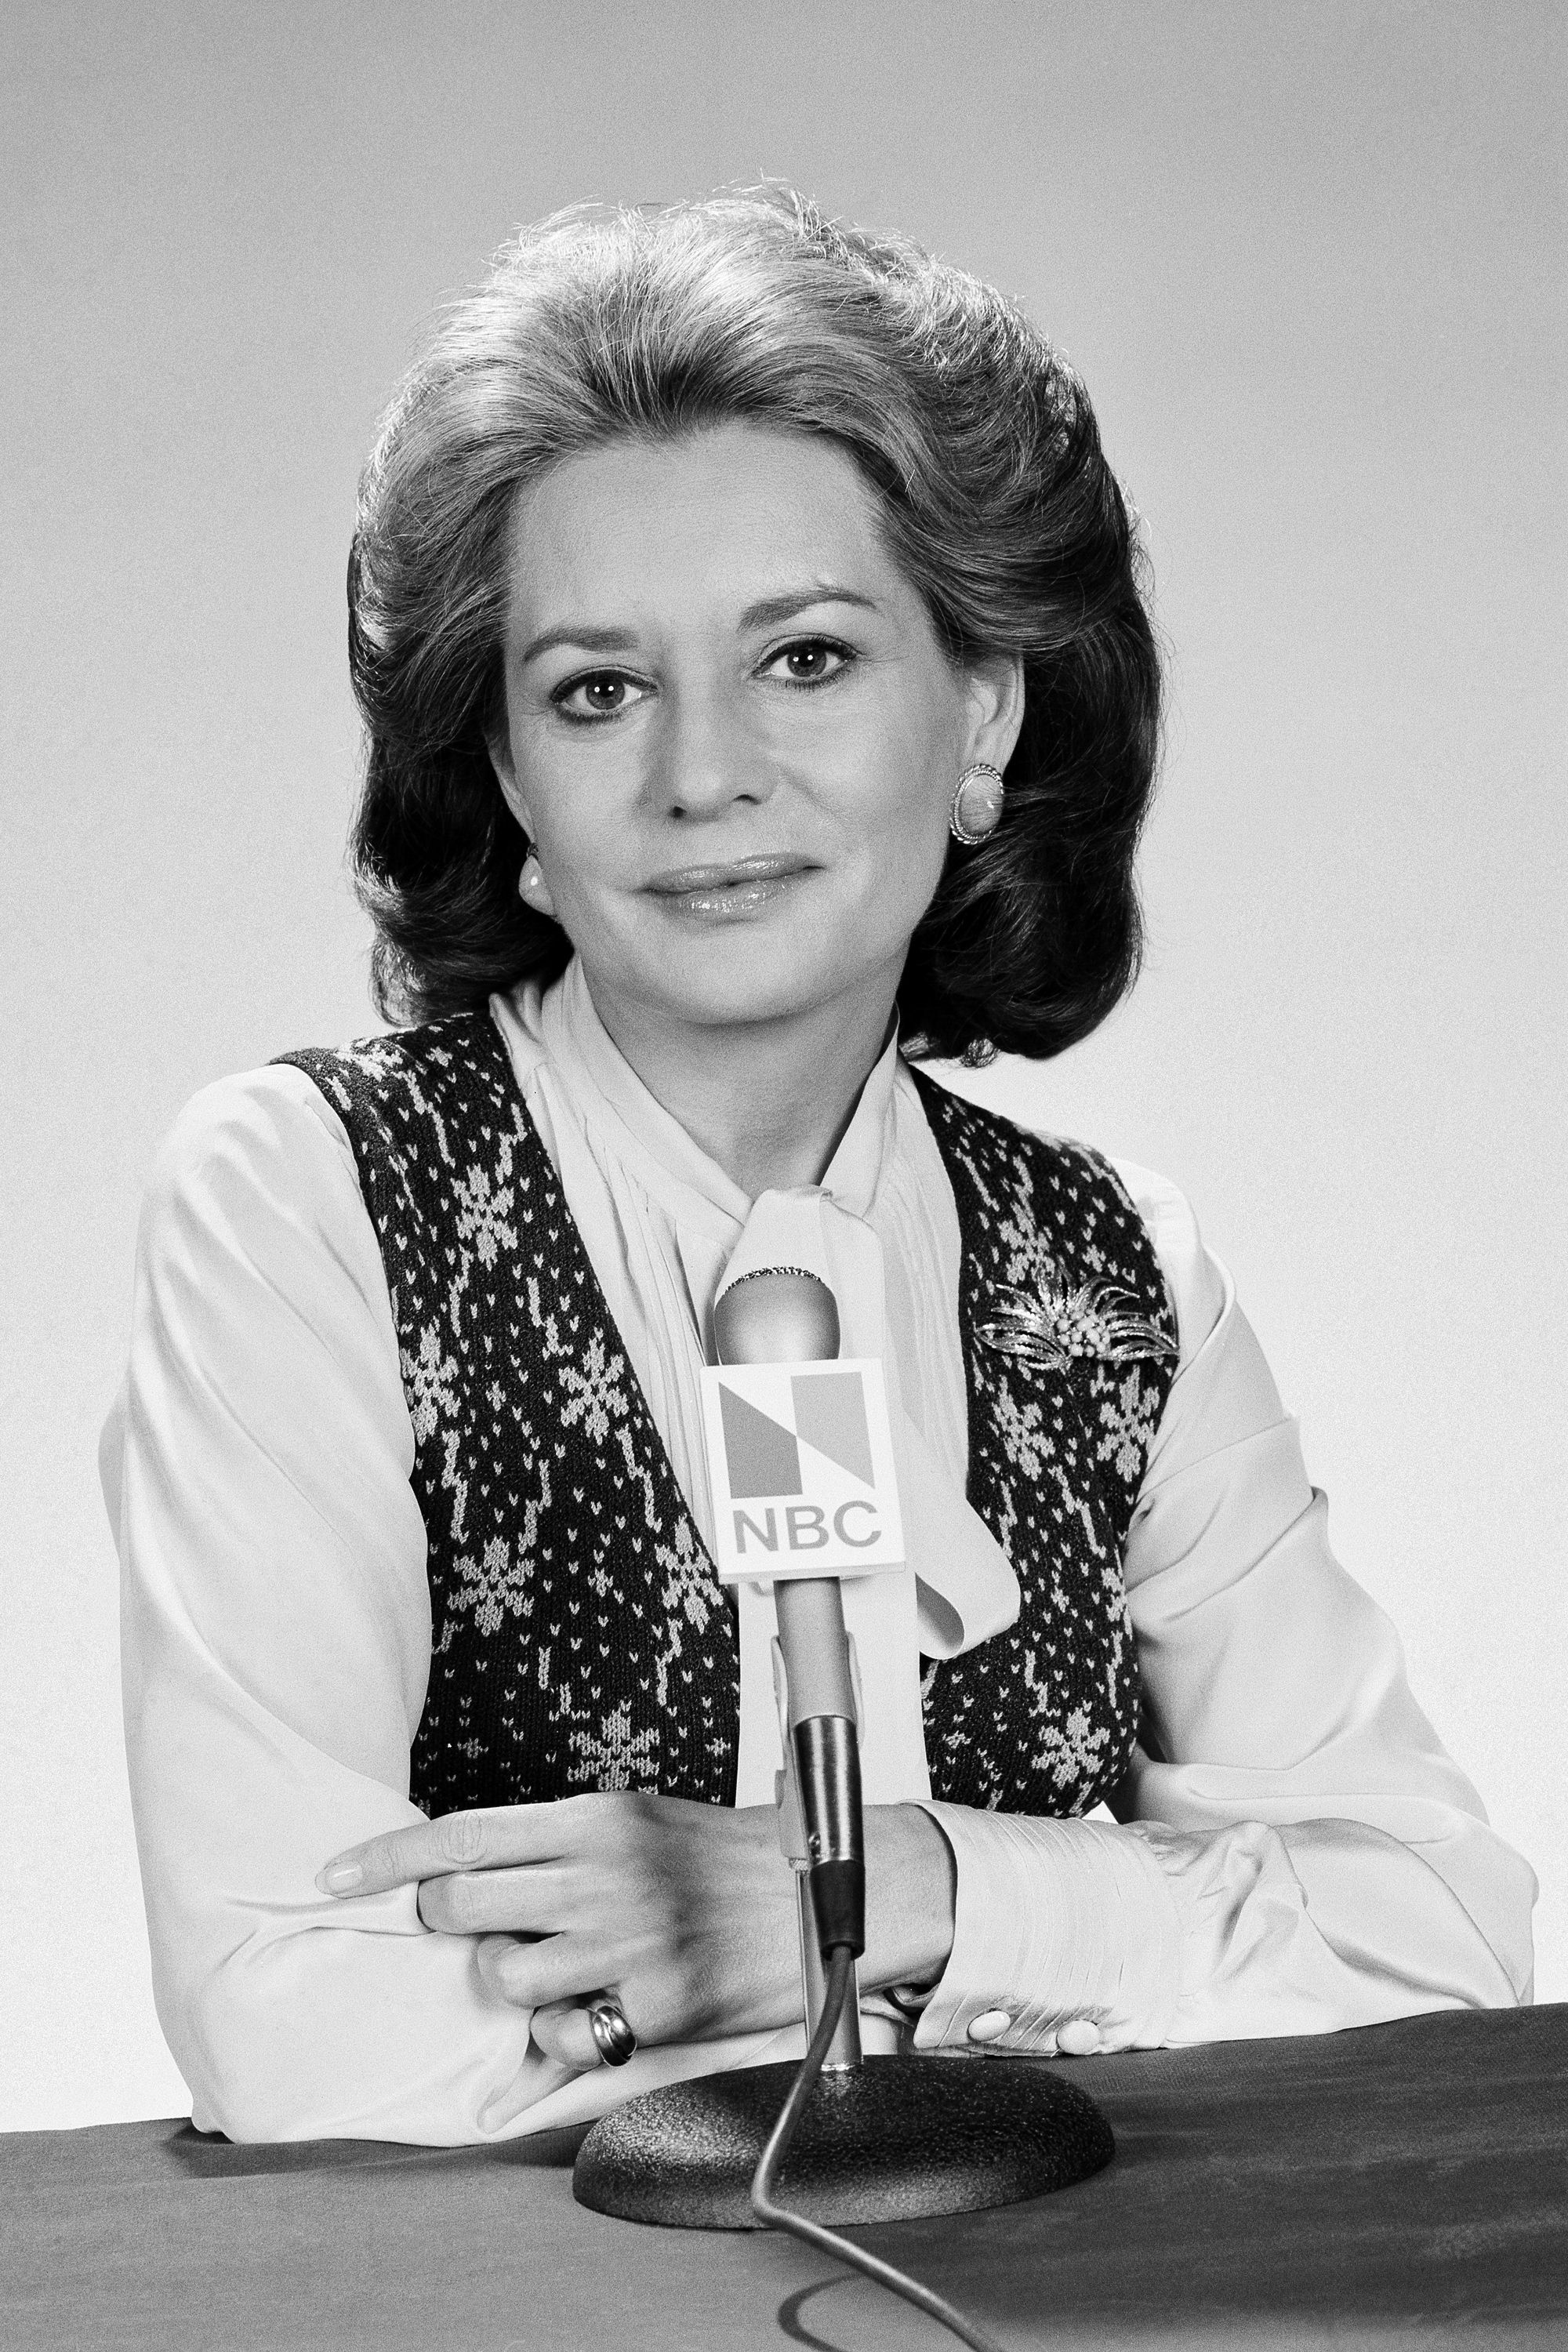 inspiring women who shaped feminism barbara walters  25 inspiring women who shaped feminism